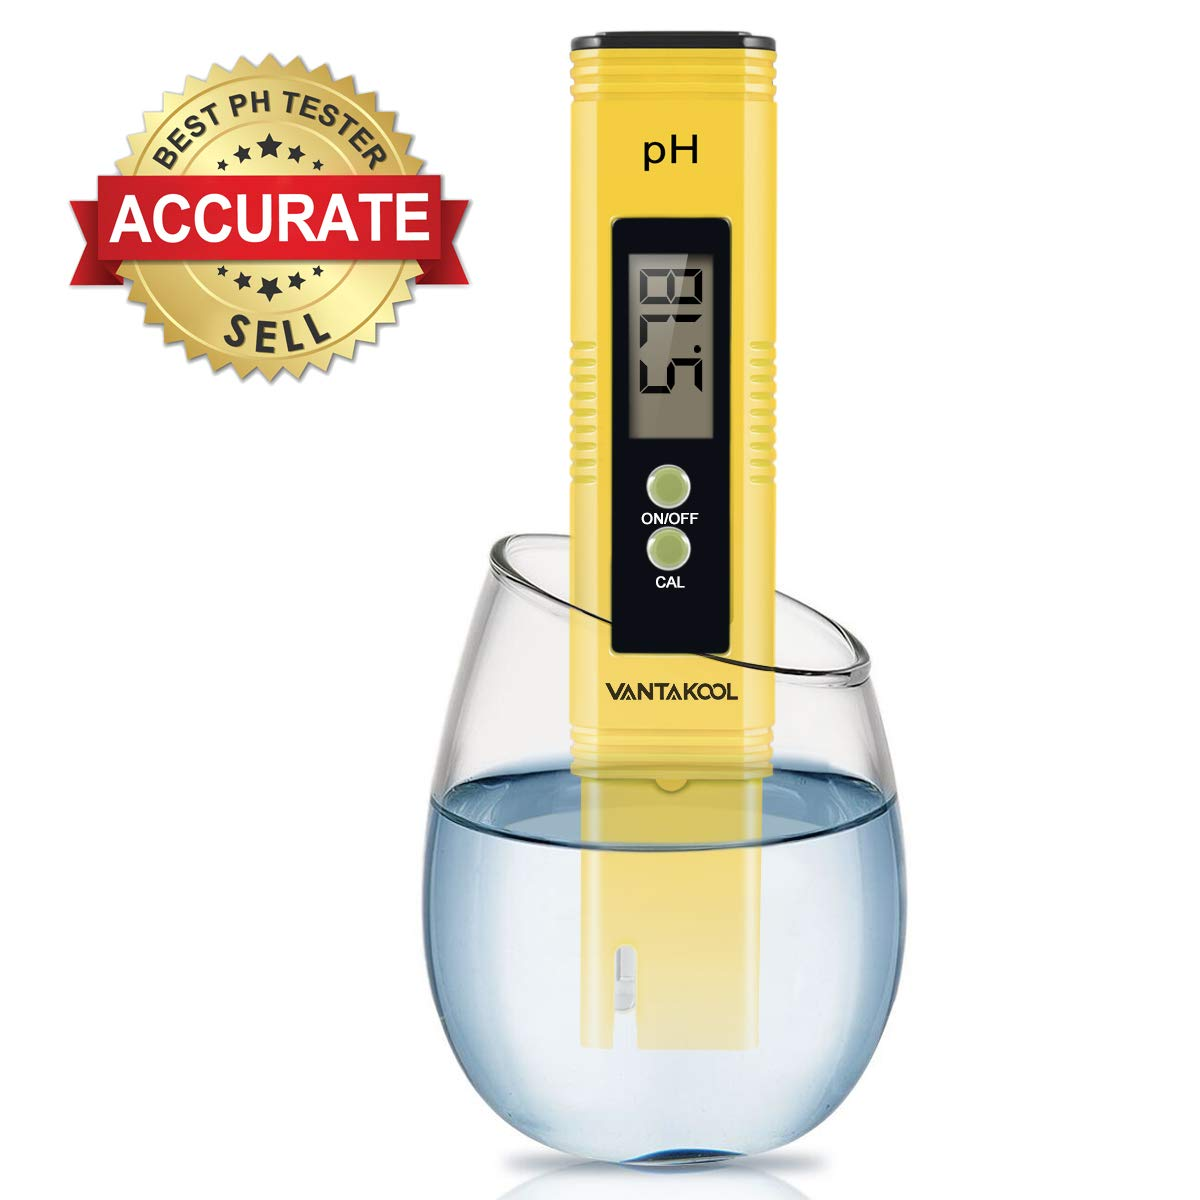 Digital PH Meter, EternalBe PH Meter 0.01 PH High Accuracy Water Quality Tester with 0-14 PH Measurement Range for Household Drinking, Pool and Aquarium Water PH Tester Design with ATC (Blue) (yellow) by EternalBe